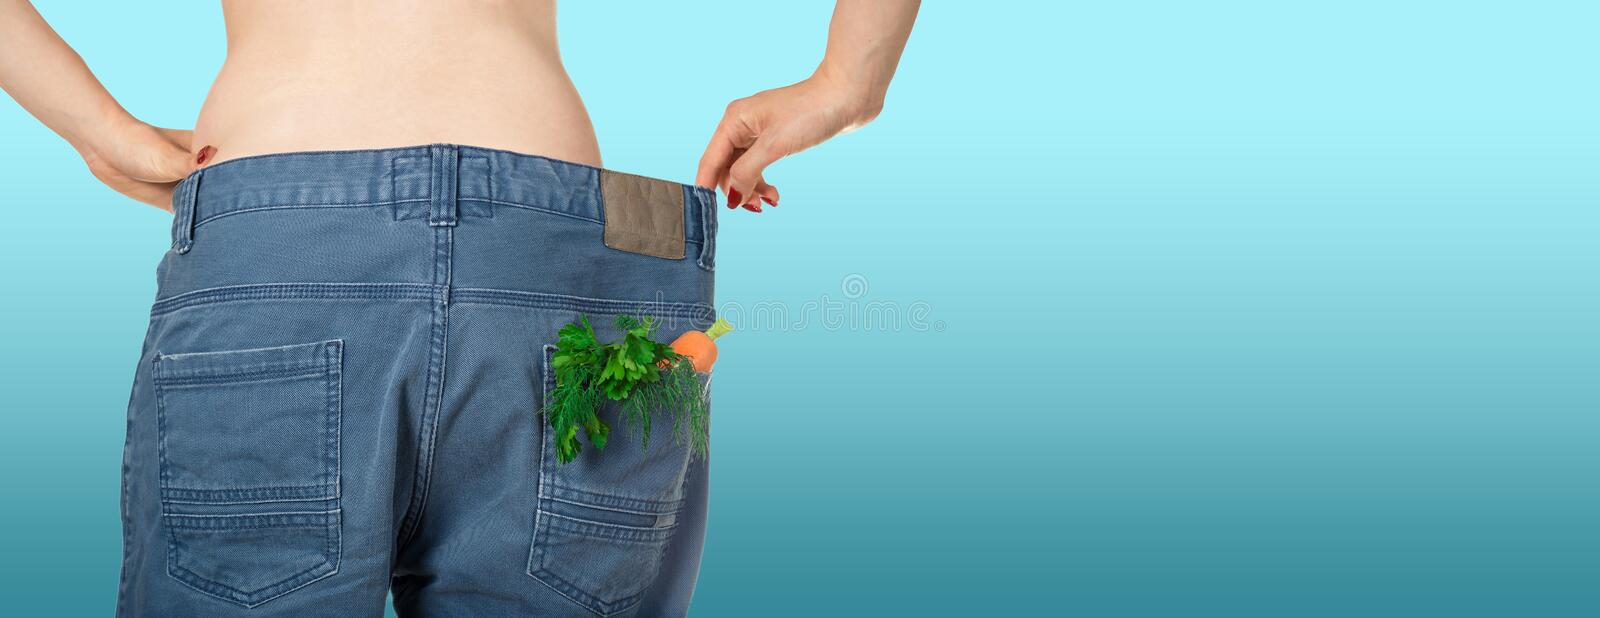 Weight loss and healthy eating or dieting concept. Slim girl in oversized jeans with a carrot, dill and parsley in the pocket. Rear view. Close shot. Mockup stock photo